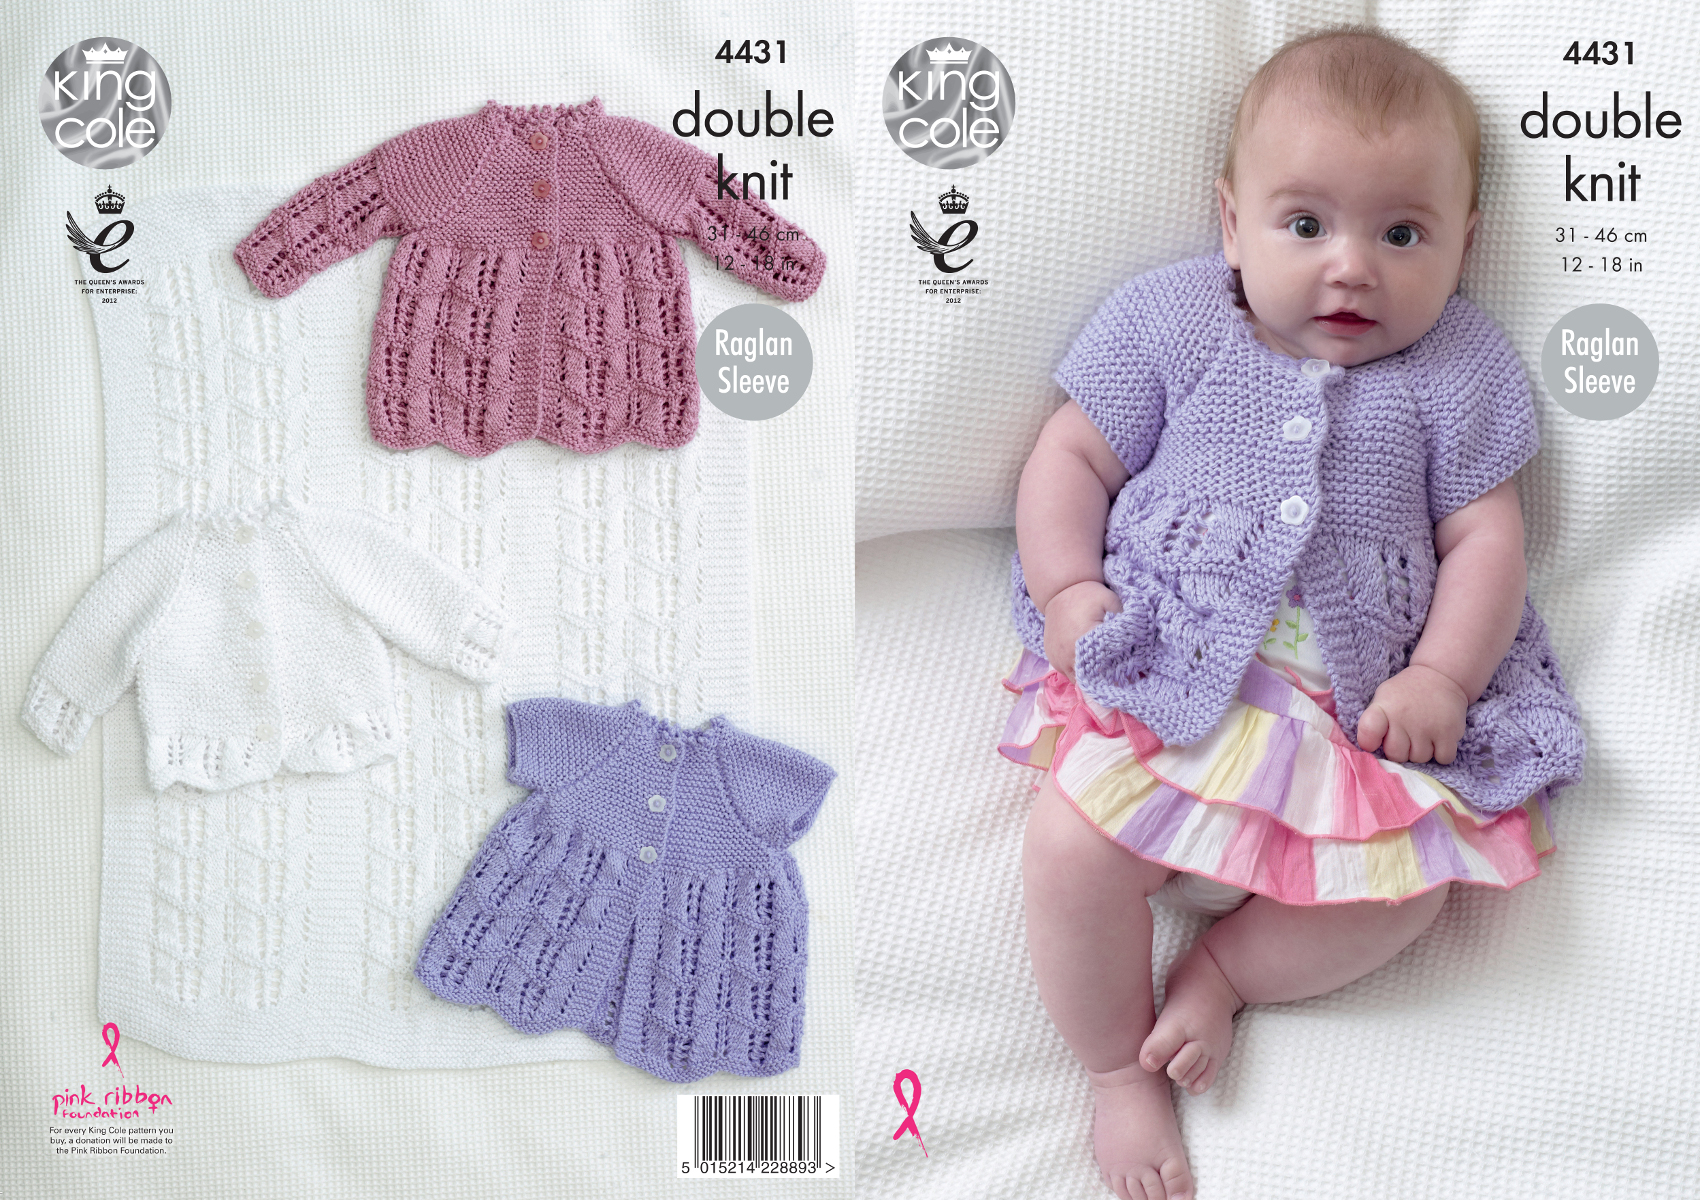 Knitting Patterns For Babies Double Knitting : King Cole Baby Double Knitting Pattern Matinee Coats Cardigan & Blanket D...